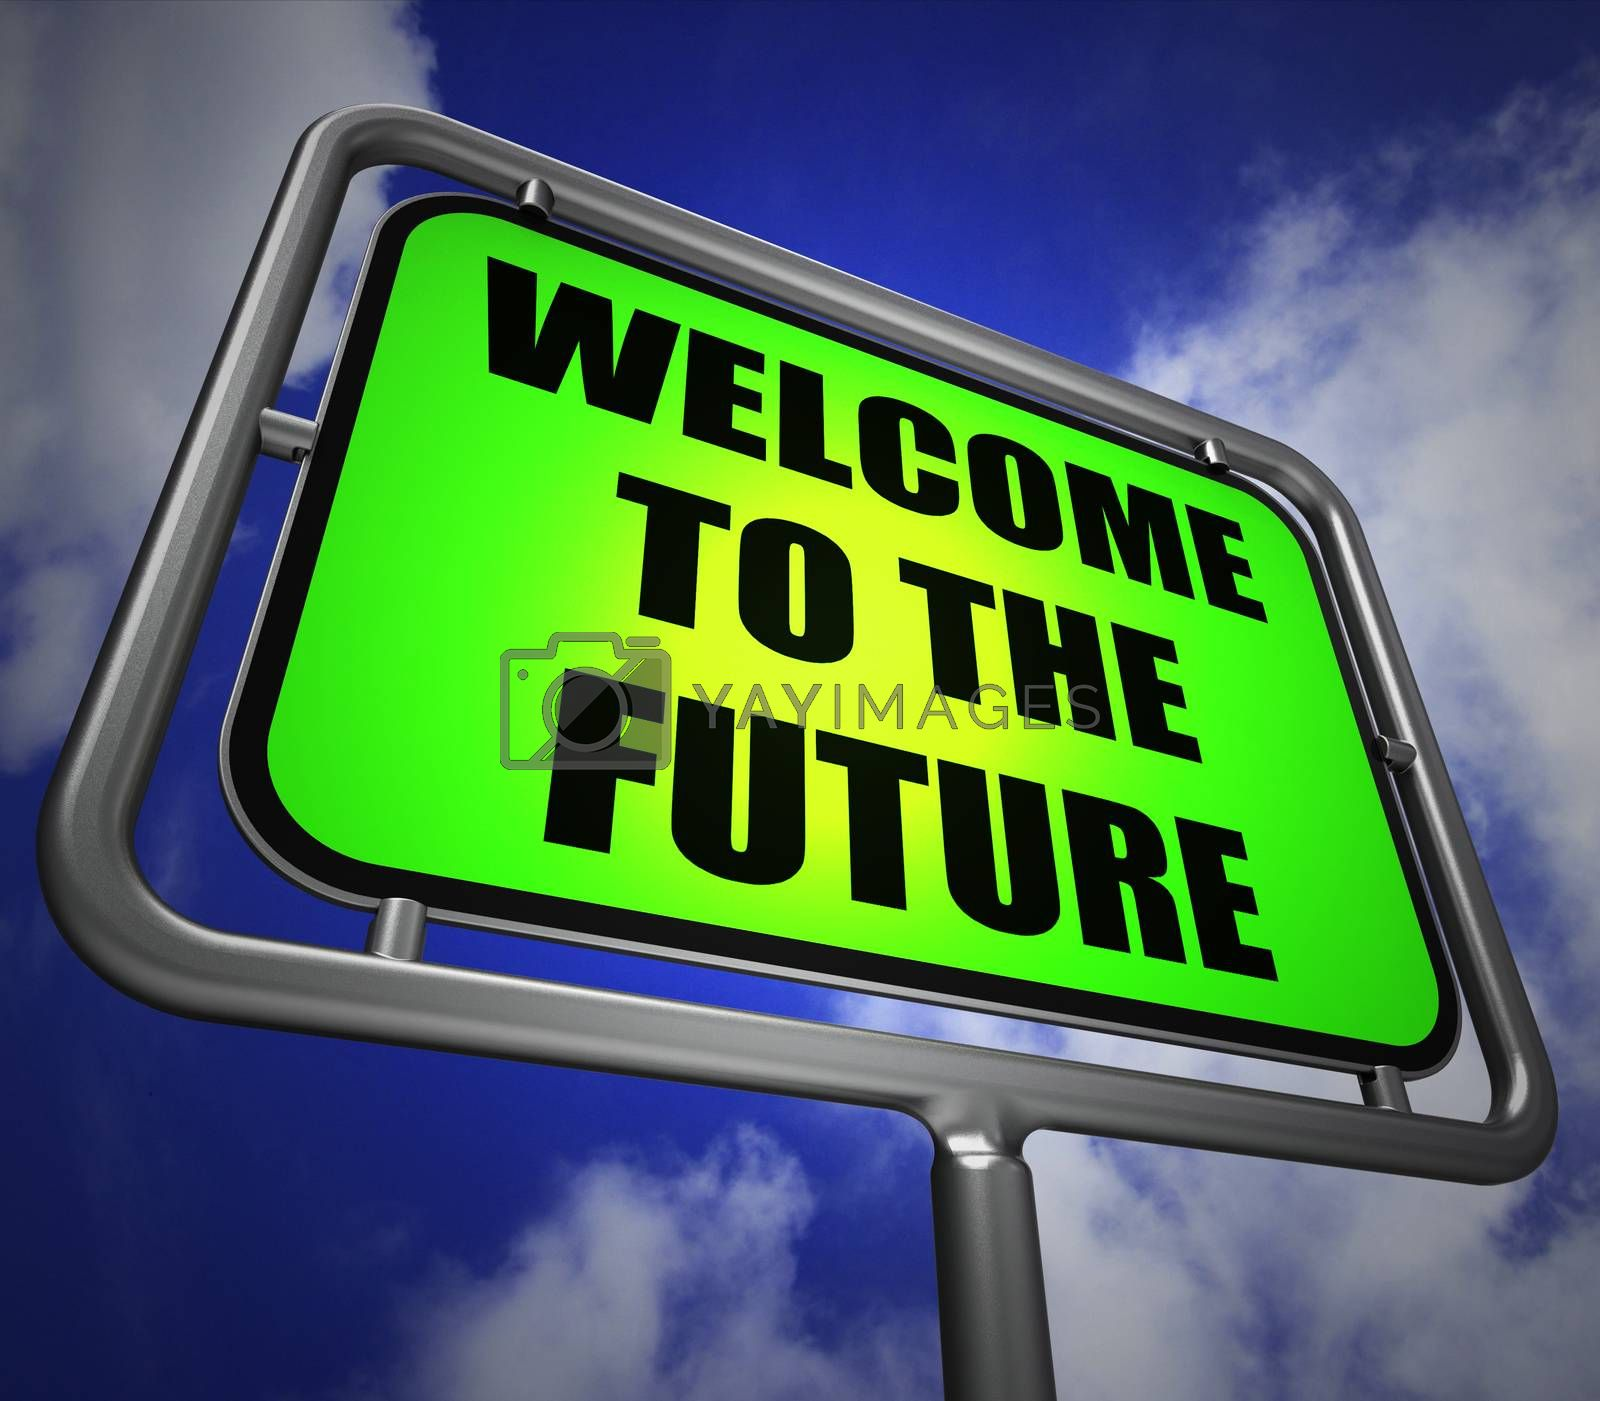 Welcome to the Future Signpost Indicates Imminent Arrival of Tim by stuartmiles